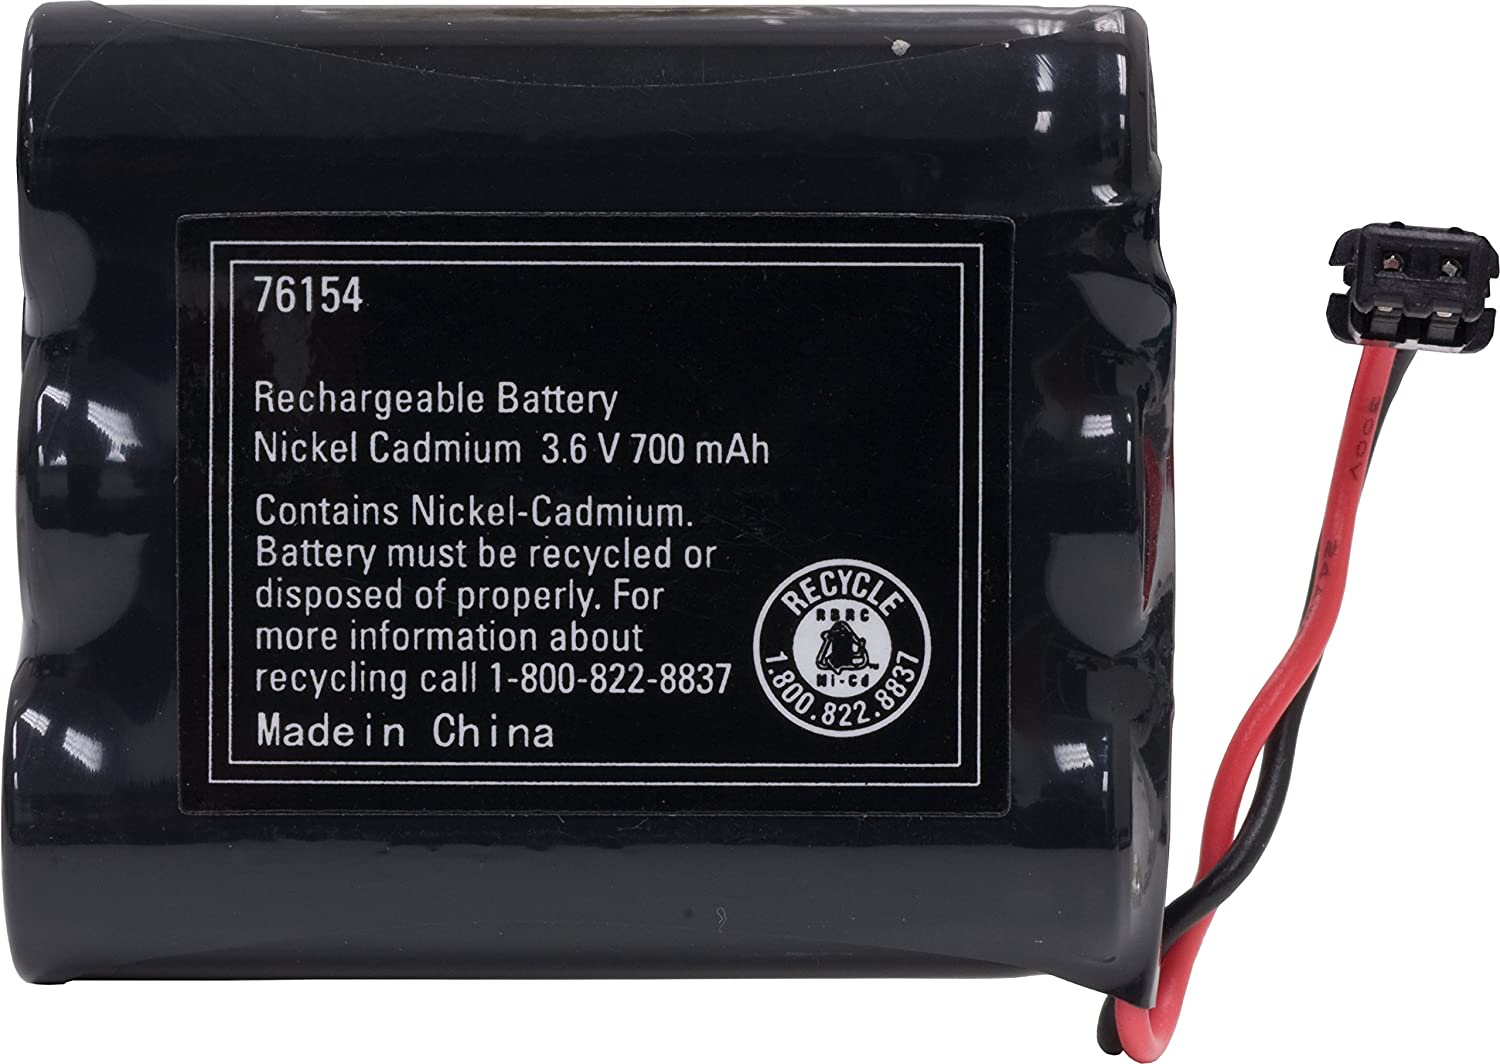 Power Gear Cordless Phone Rechargeable NiCad Battery, 3.6V 700mAh Battery Pack, Cordless Phone Handset Compatible, 76154 Jasco Products Company LLC